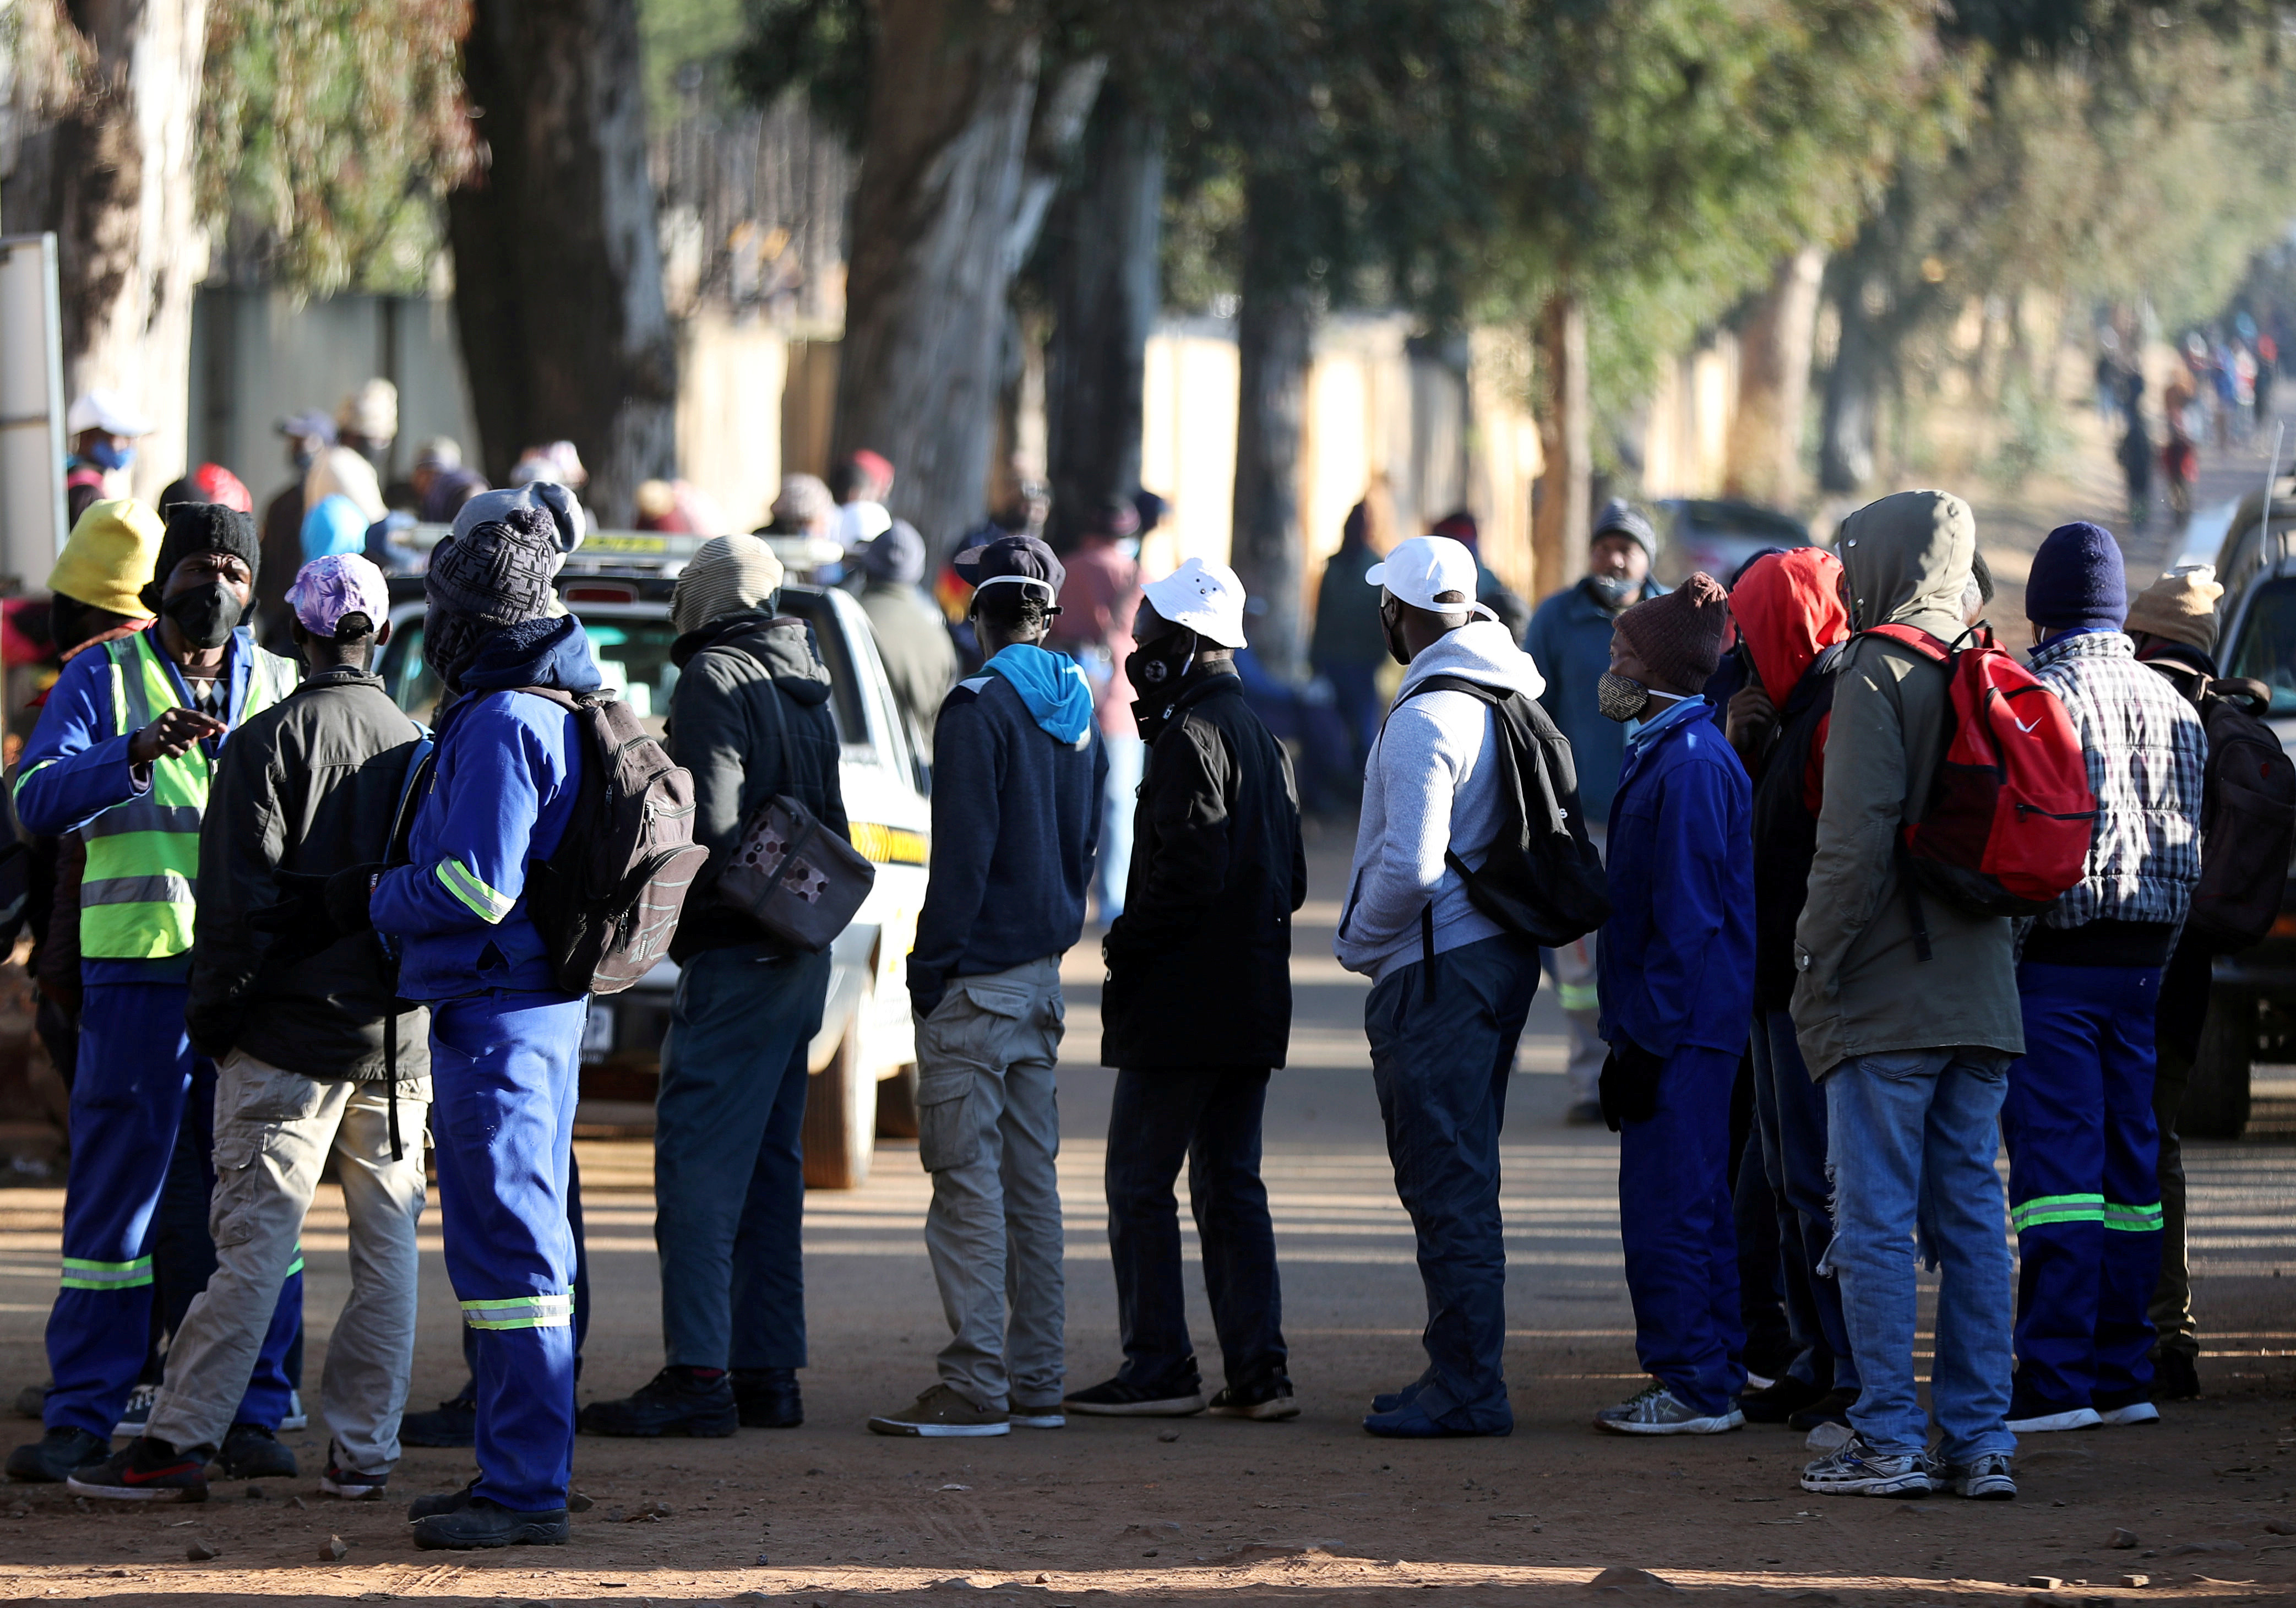 Job seekers stand outside a construction site ahead of the release of the unemployement numbers by Statistics South Africa, in Eikenhof, south of Johannesburg, South Africa, June 23, 2020. REUTERS/Siphiwe Sibeko - RC2VEH9YEZV1